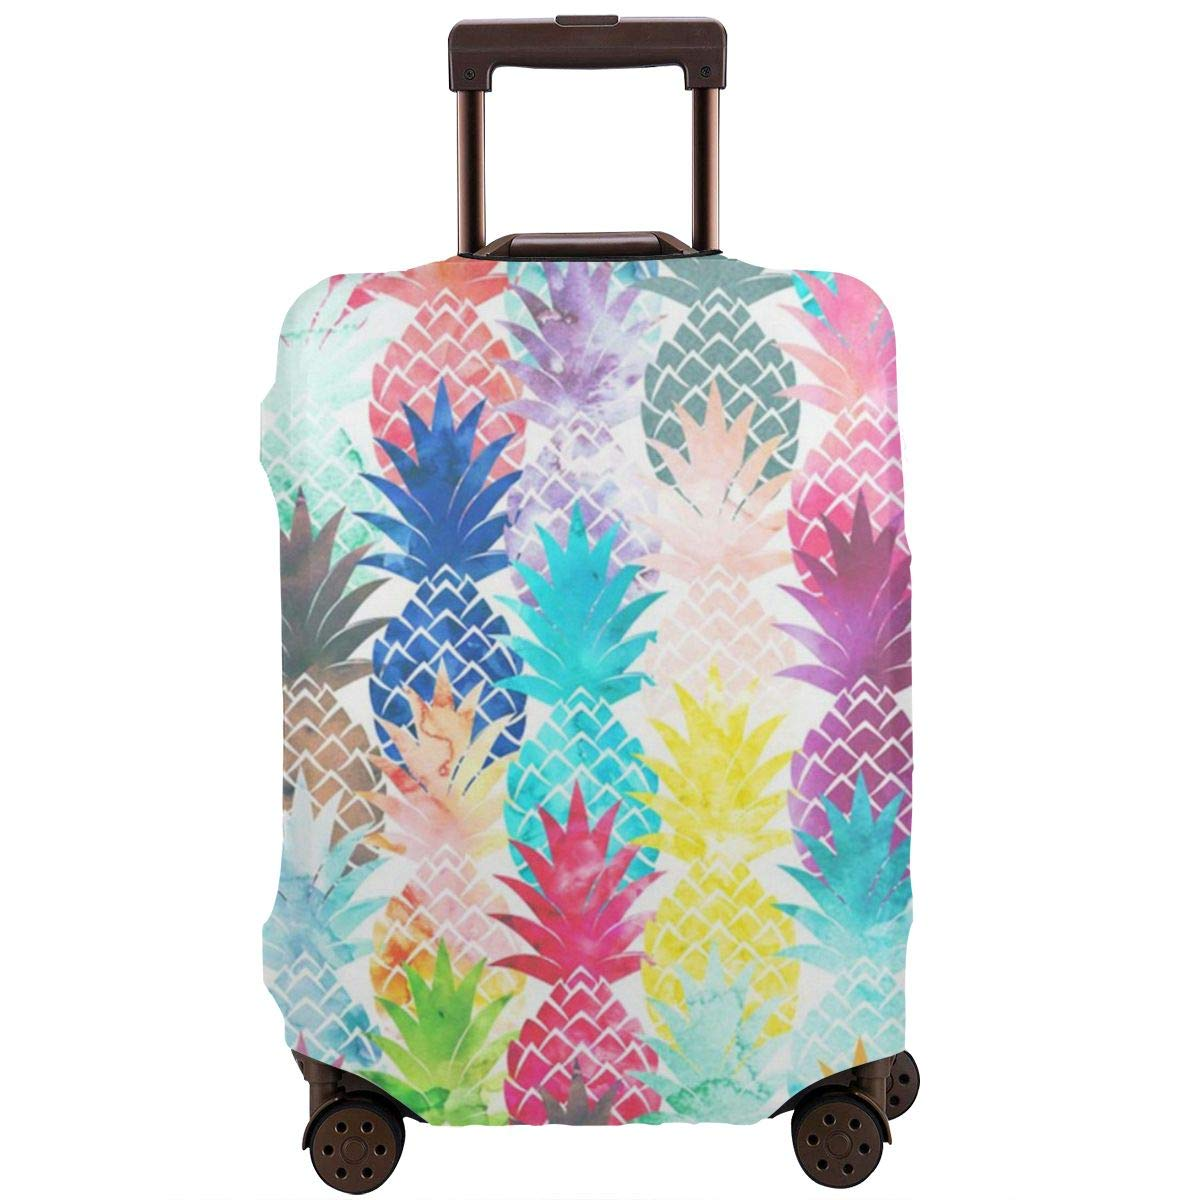 Luggage Cover Hawaiian Tropical Pineapple Watercolor Print Protective Travel Trunk Case Elastic Luggage Suitcase Protector Cover